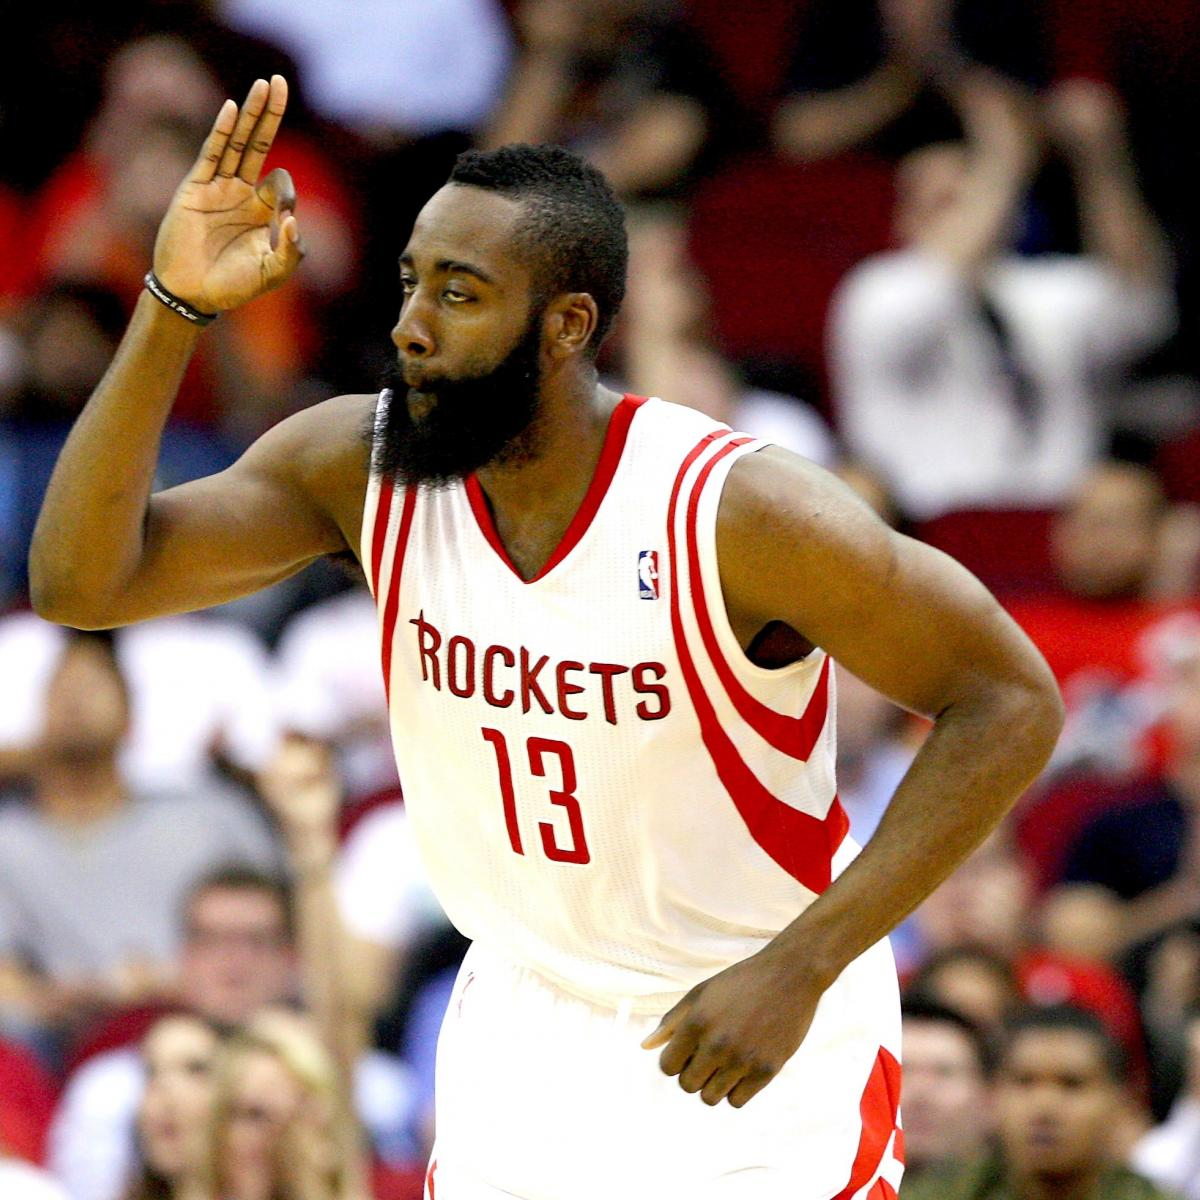 Rockets Vs Warriors Tickets Game 3: Rockets Tie NBA Record With 23 Three-Pointers Against The